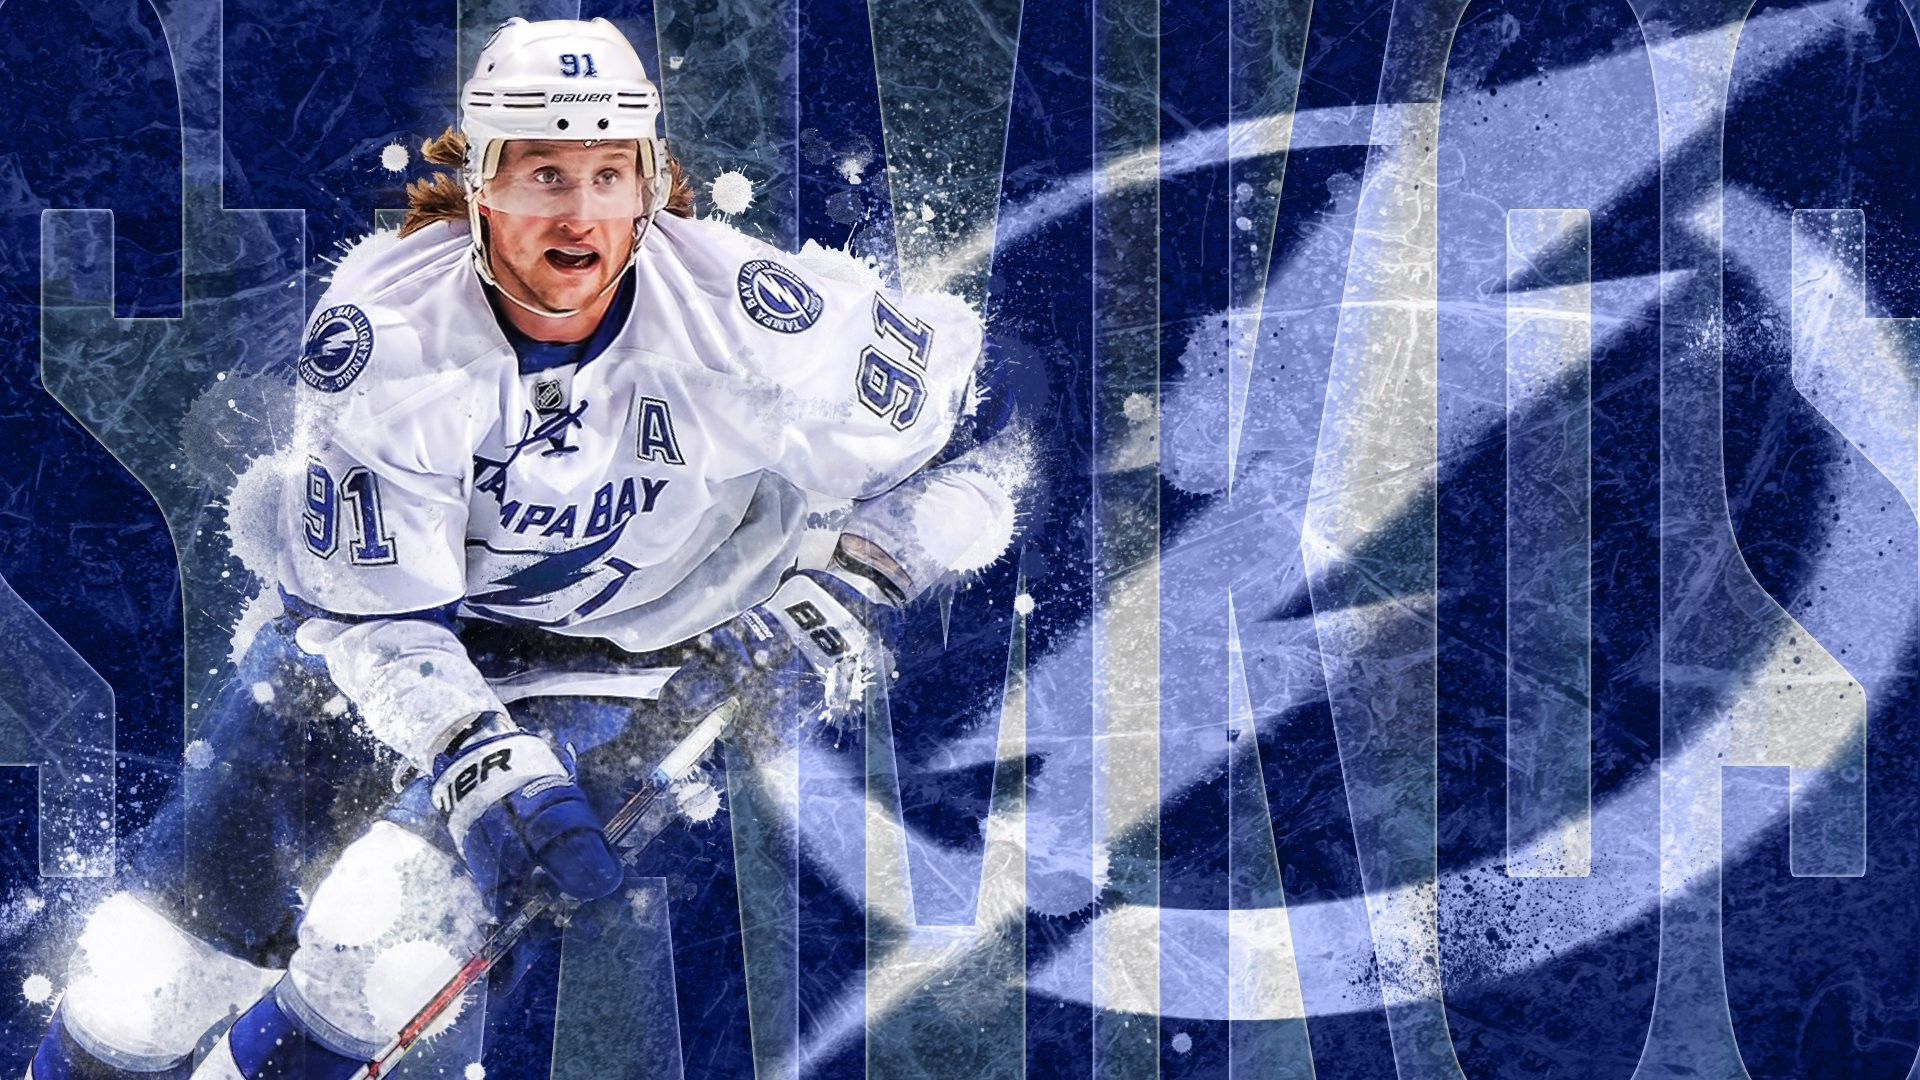 1920x1080 TAMPA BAY LIGHTNING nhl hockey (51) wallpaper |  | 349247 |  WallpaperUP